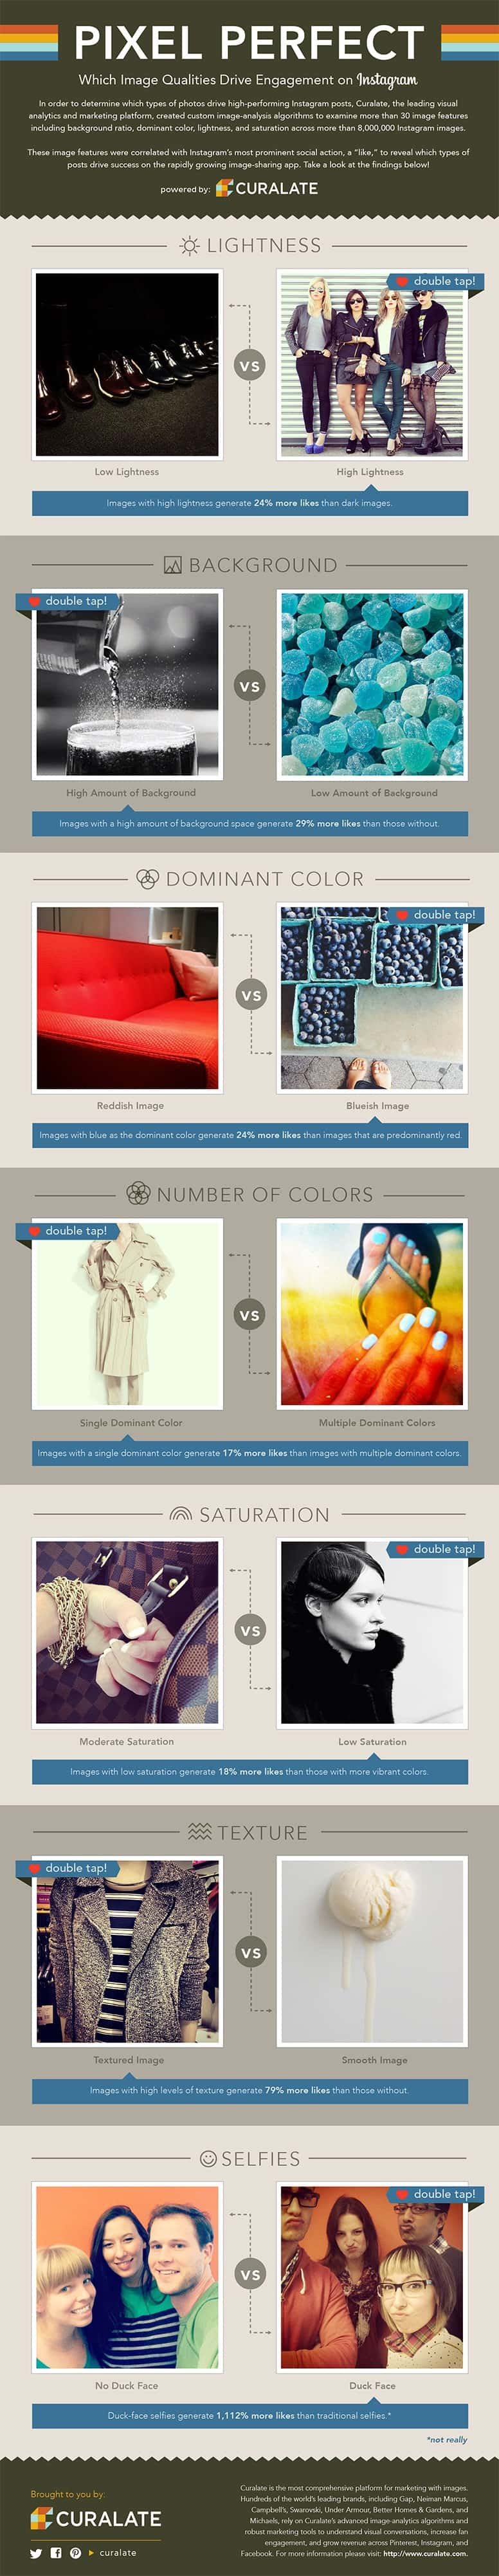 infographic from Curalate